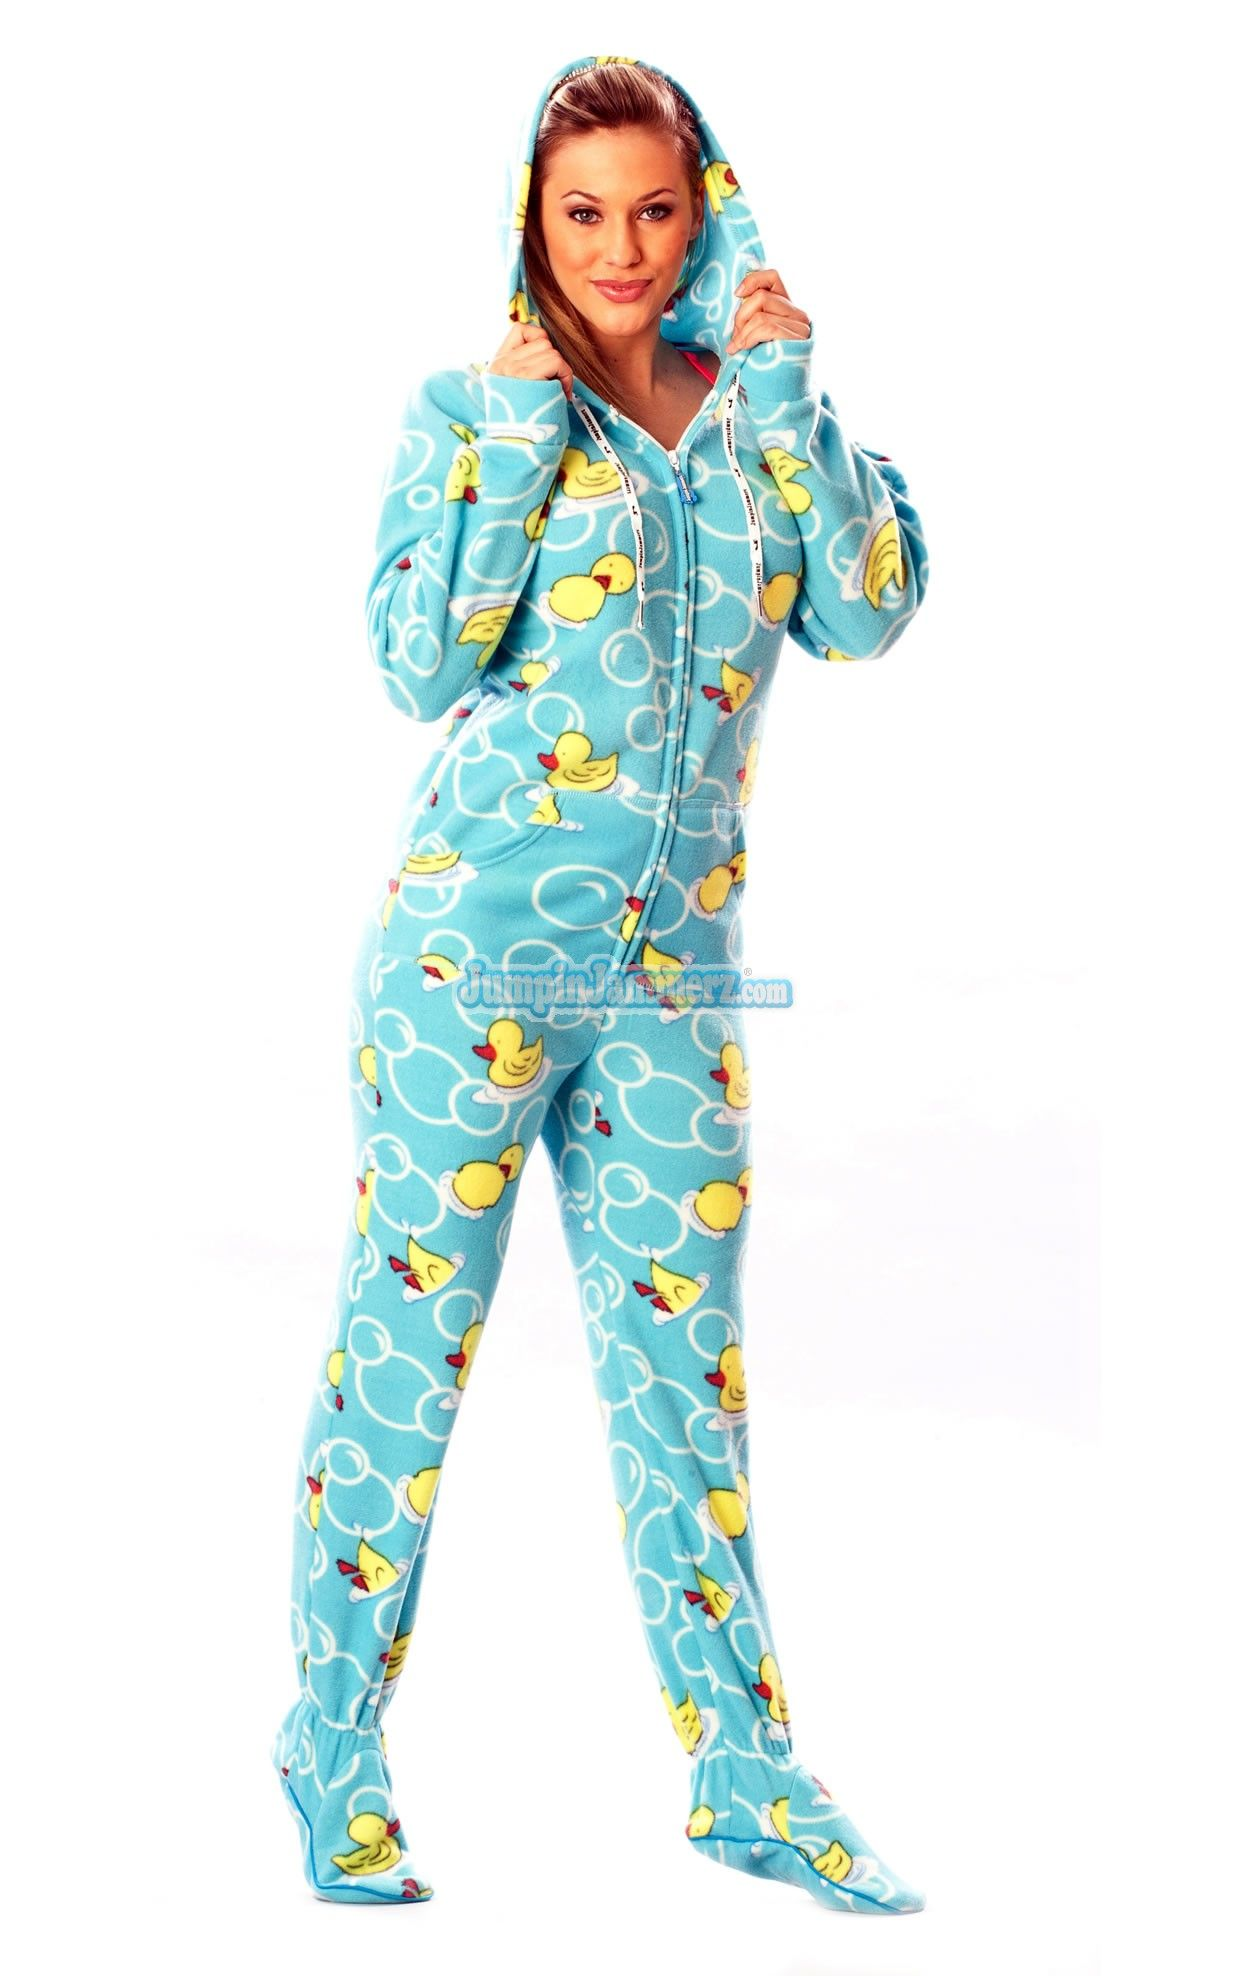 Blue Ducks - Drop Seat Pajamas - Pajamas Footie PJs Onesies One Piece Adult  Pajamas - JumpinJammerz.com faccdd7e9